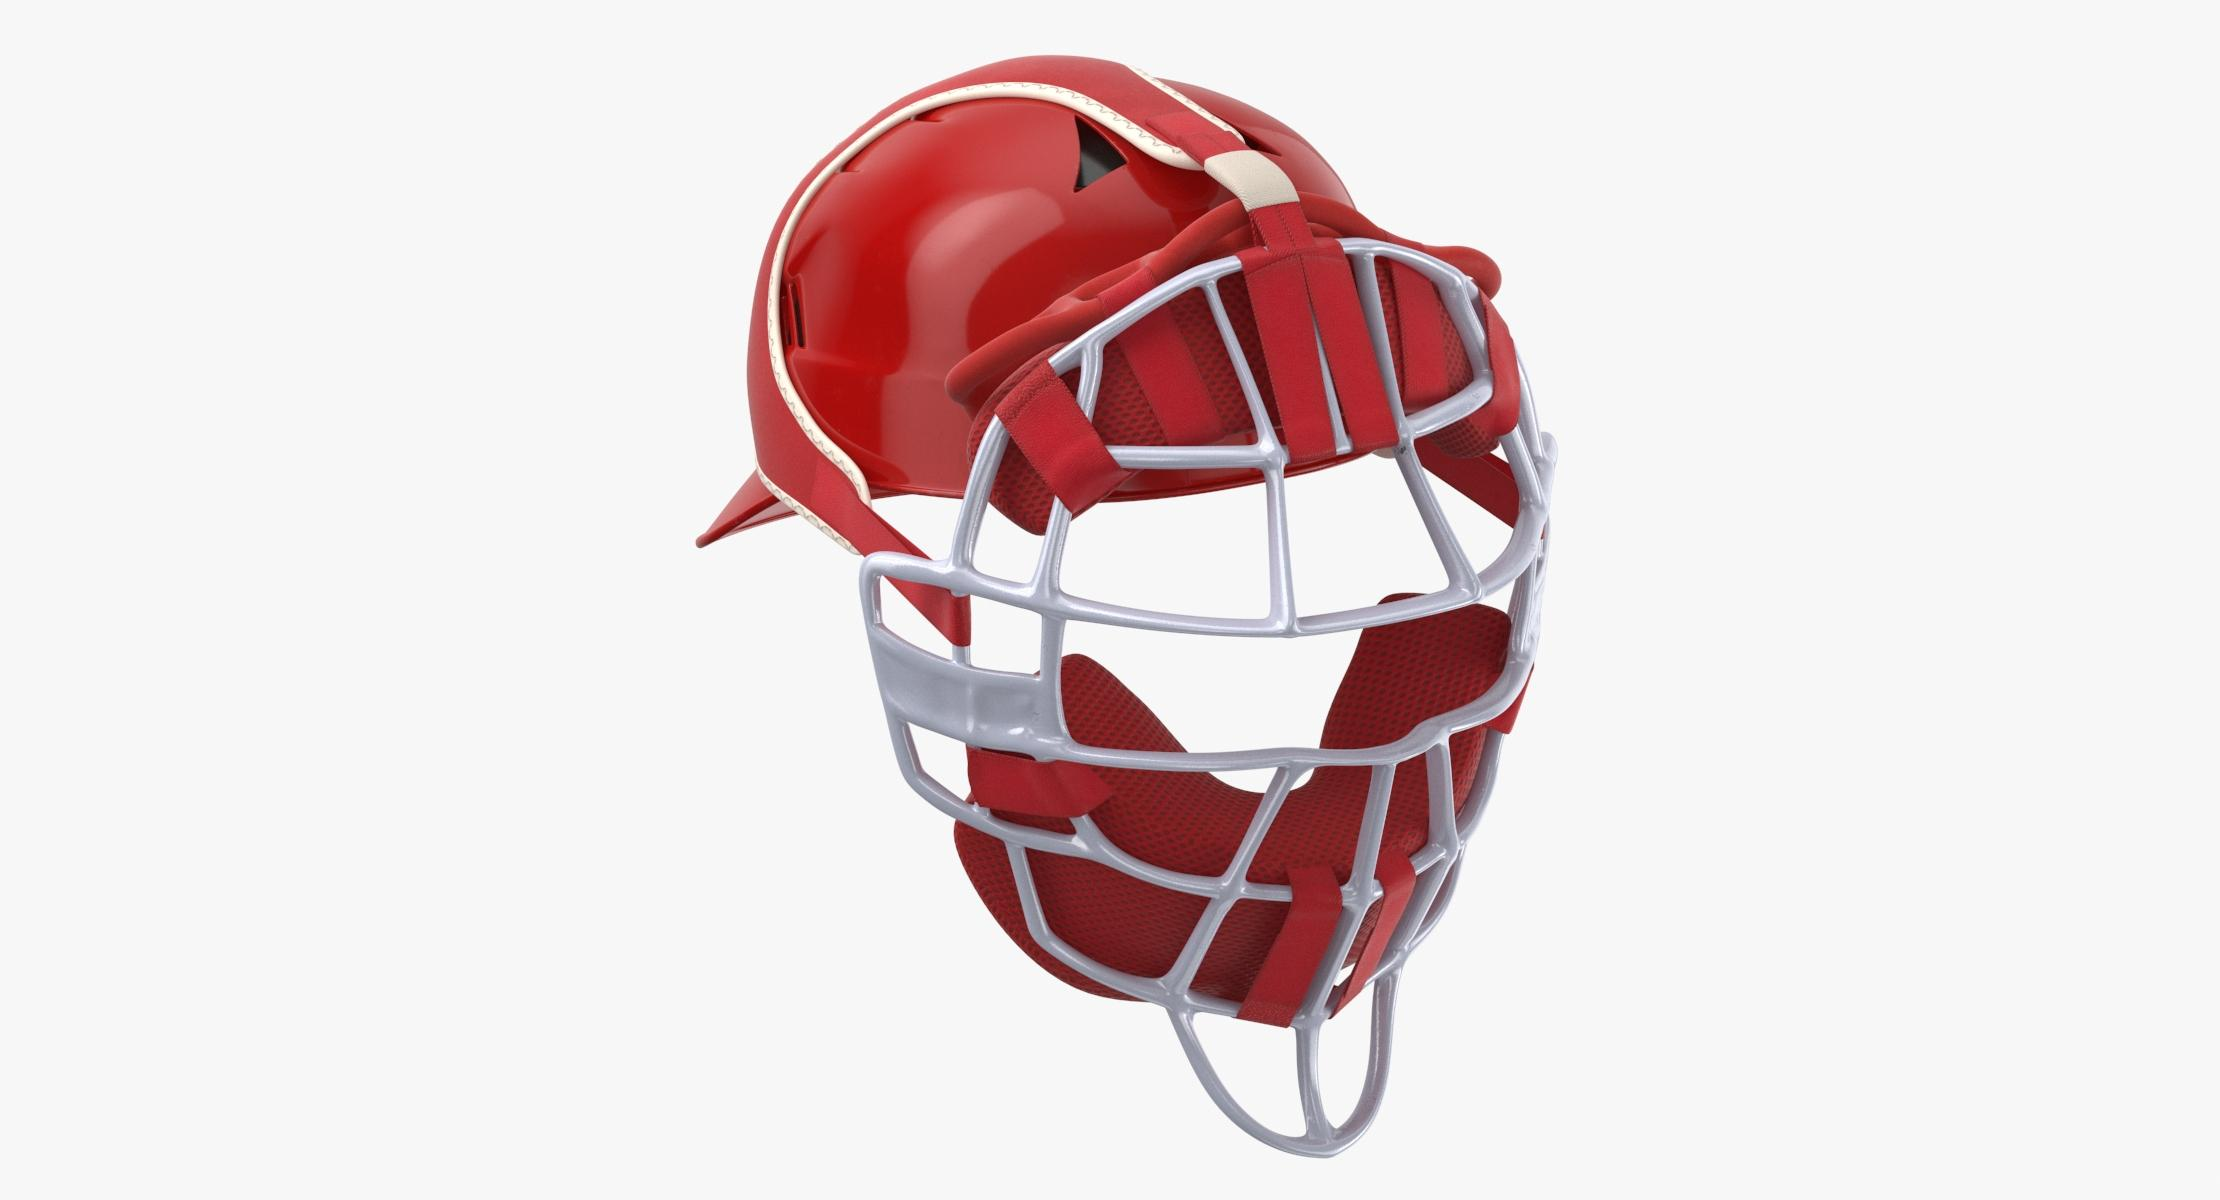 3D Baseball Catcher Mask model - reel 1